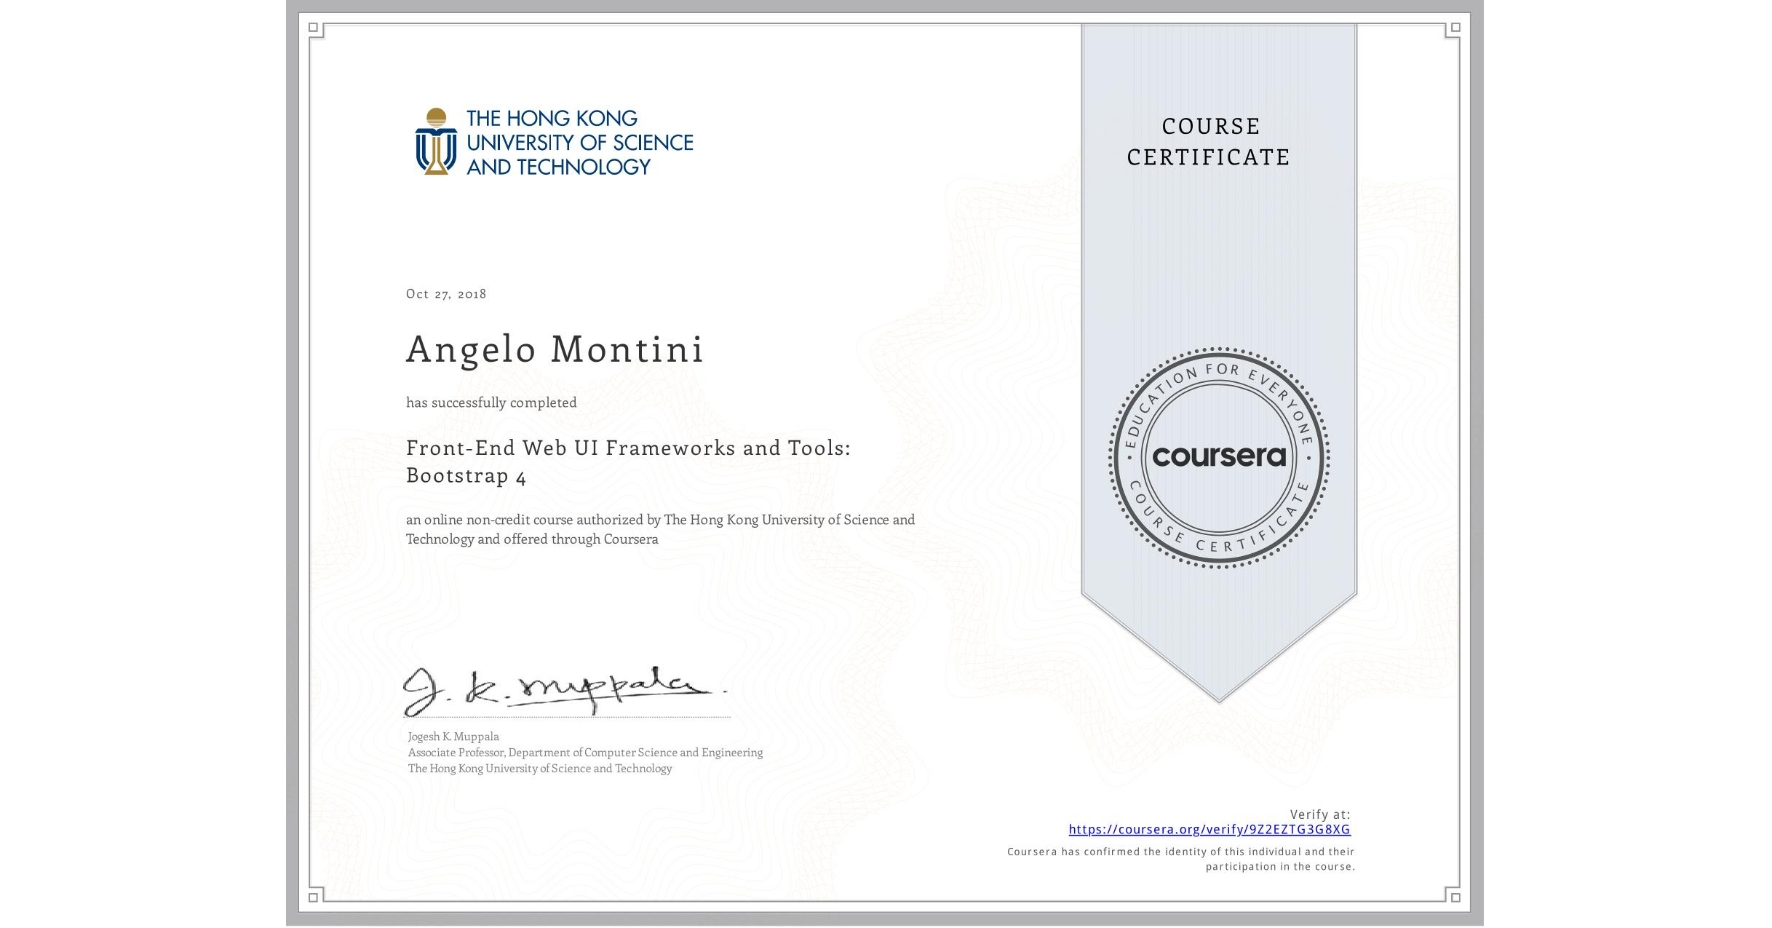 View certificate for Angelo Montini, Front-End Web UI Frameworks and Tools: Bootstrap 4, an online non-credit course authorized by The Hong Kong University of Science and Technology and offered through Coursera